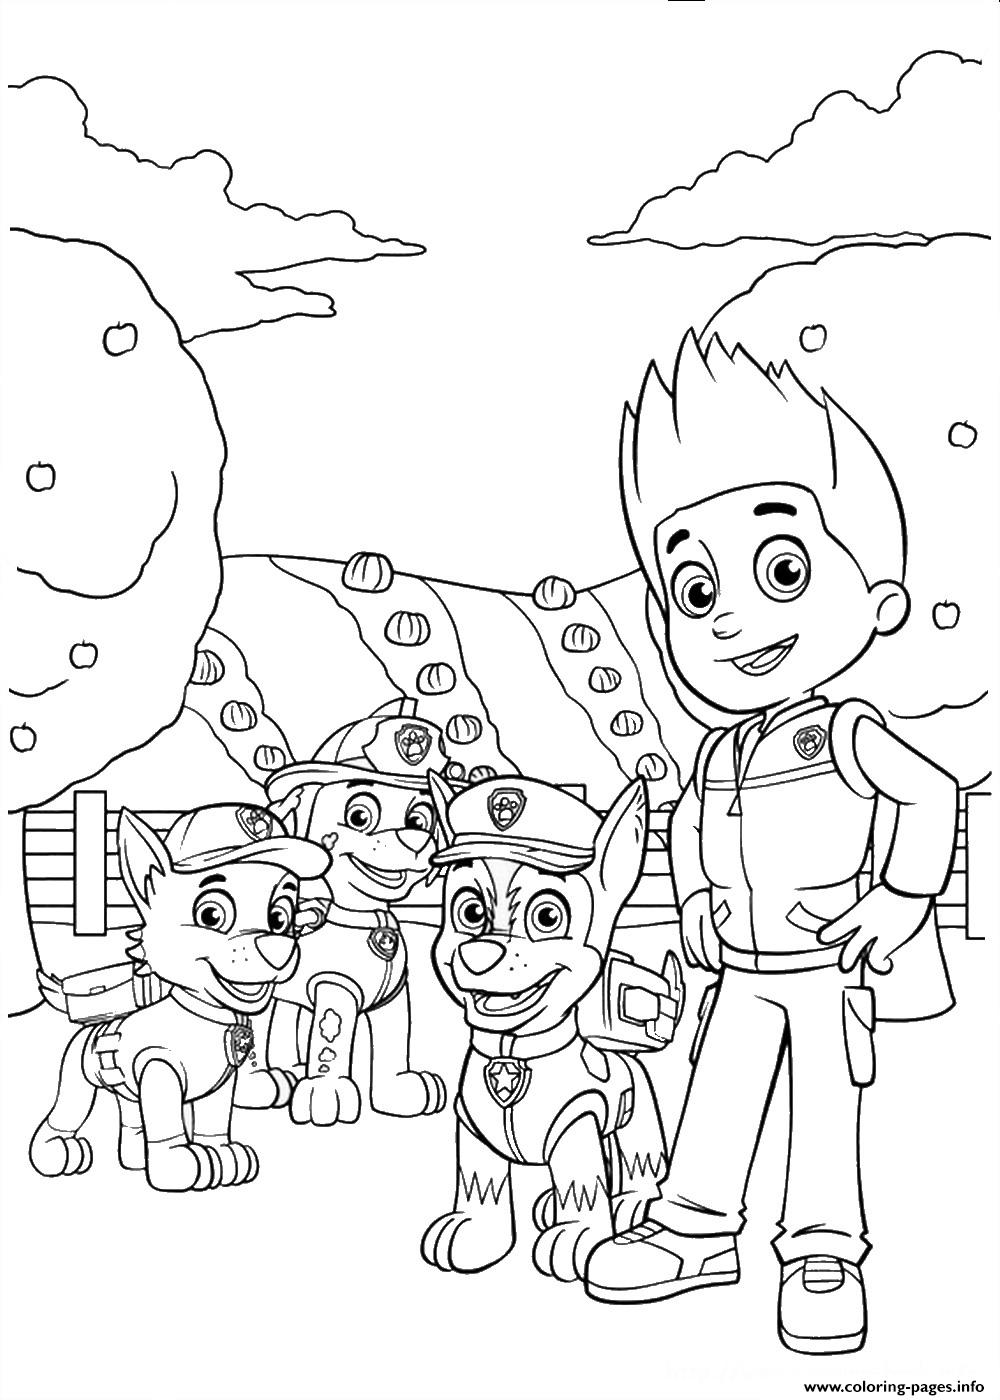 Paw patrol coloring pages happy birthday - Paw Patrol Coloring Pages Happy Birthday 42